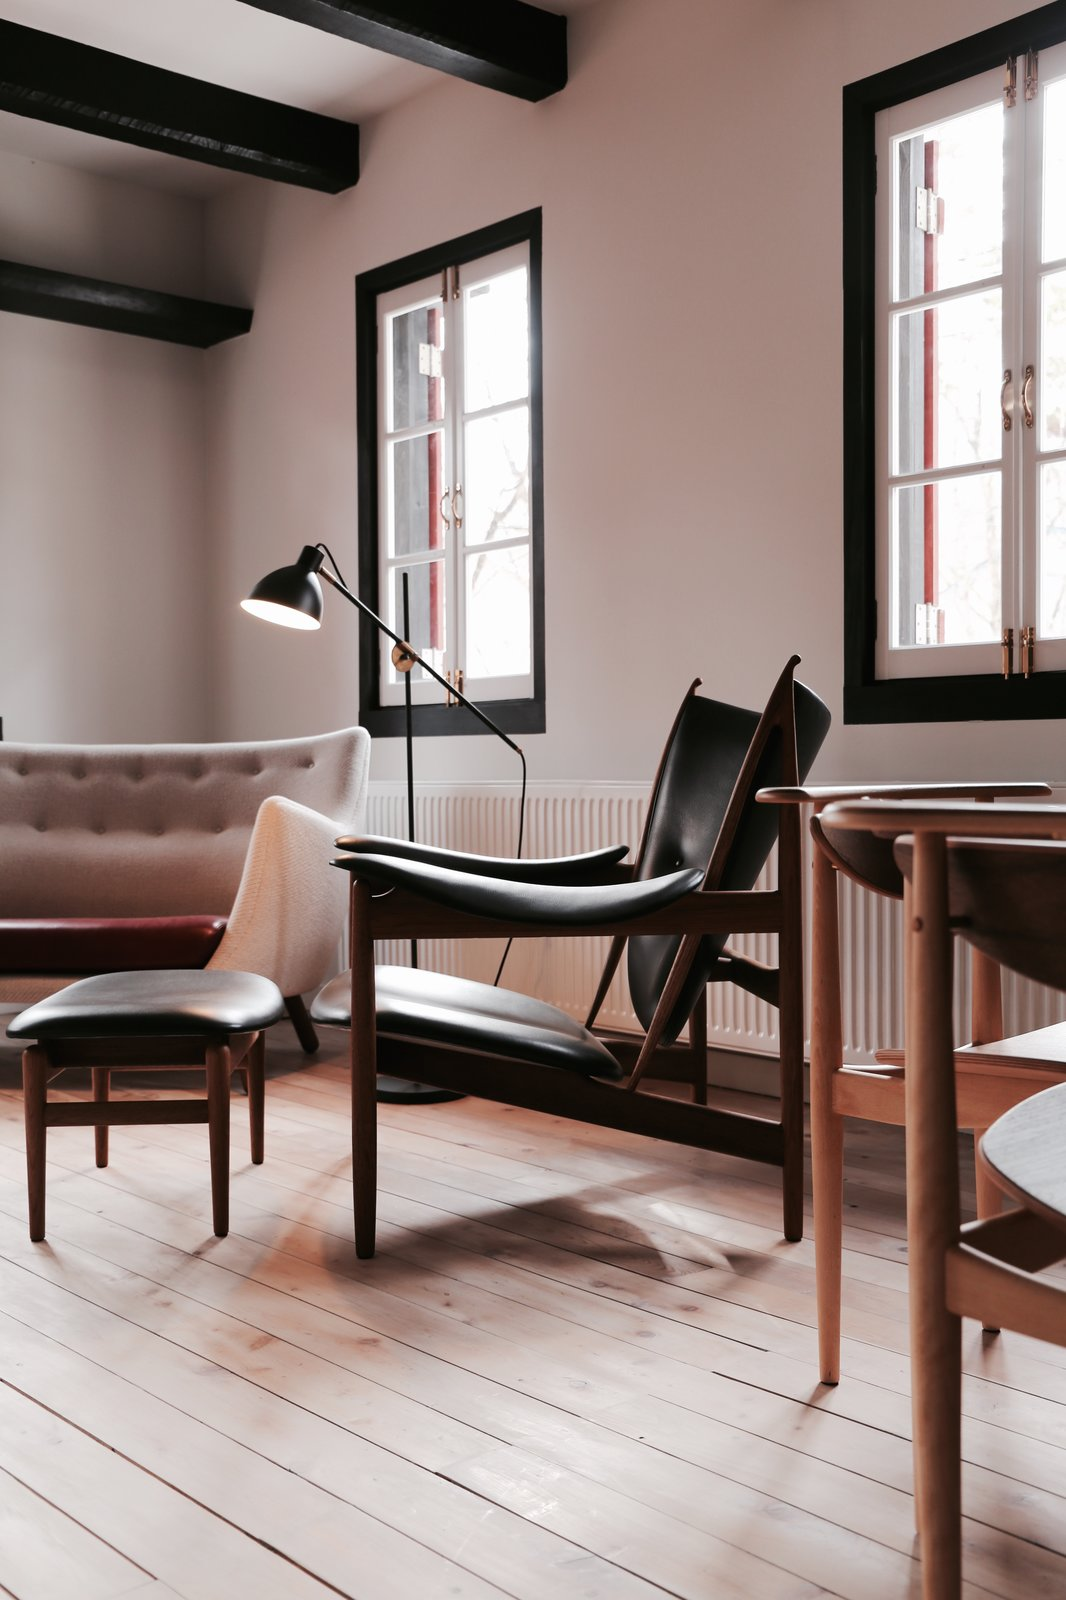 Living Room and Chair  Photo 3 of 5 in Finn Juhl Design Hotel Opens in Nagano, Japan